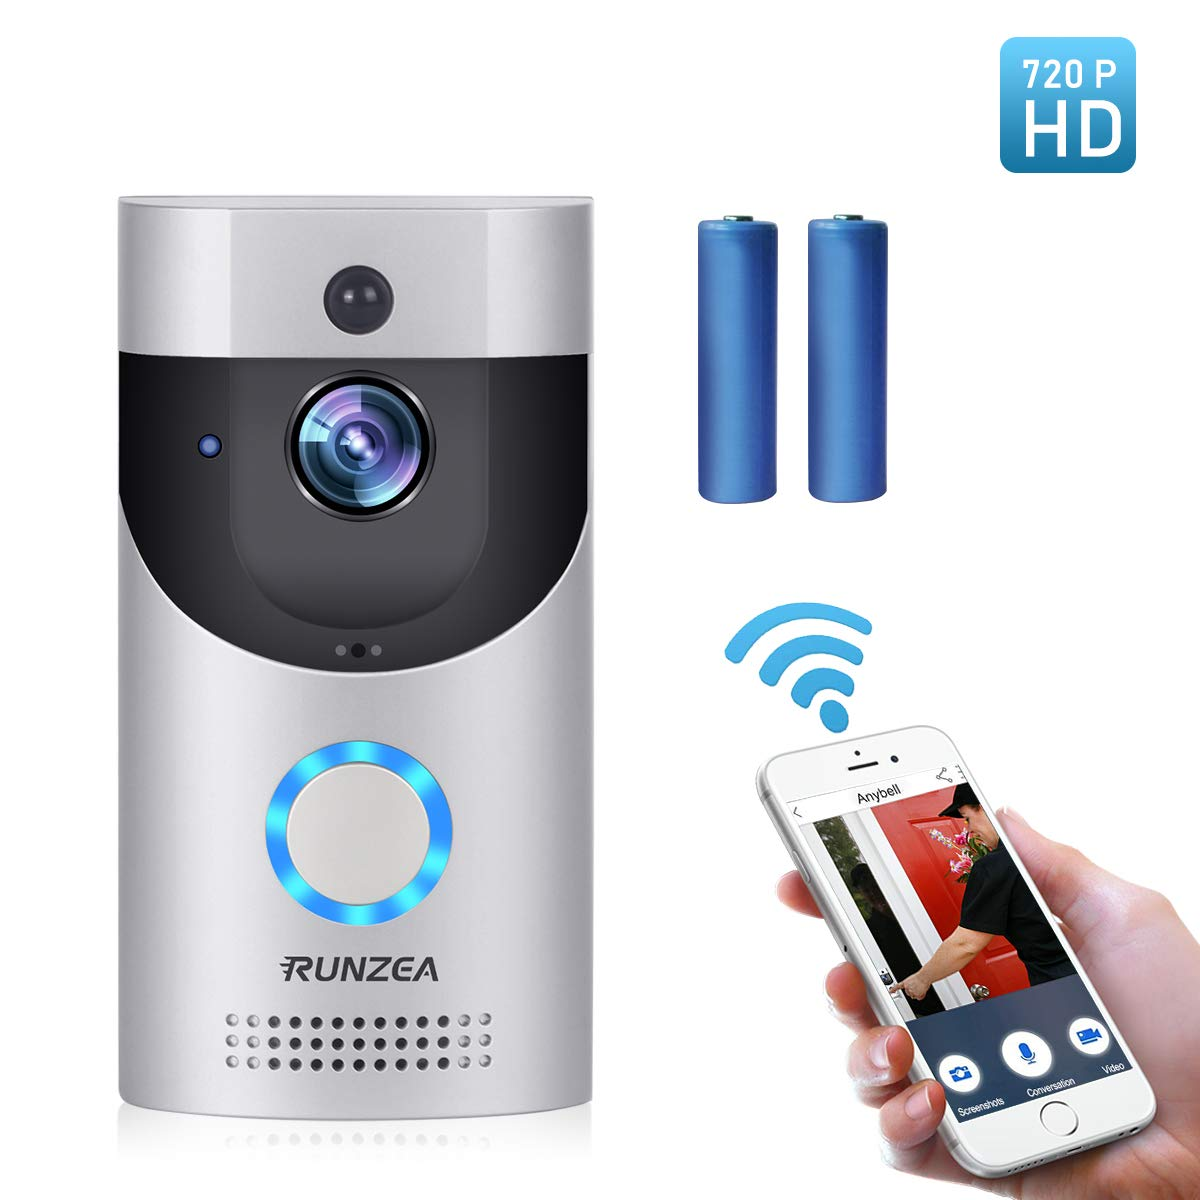 Wireless Smart Doorbell,EwiseeLive WiFi Video Doorbell,720P HD Security Camera with Two-Way Talk &Video,PIR Motion Detection,Night Vision,2 Rechargeable Batteries for iOS Android Google and Smart home by EwiseeLive (Image #1)